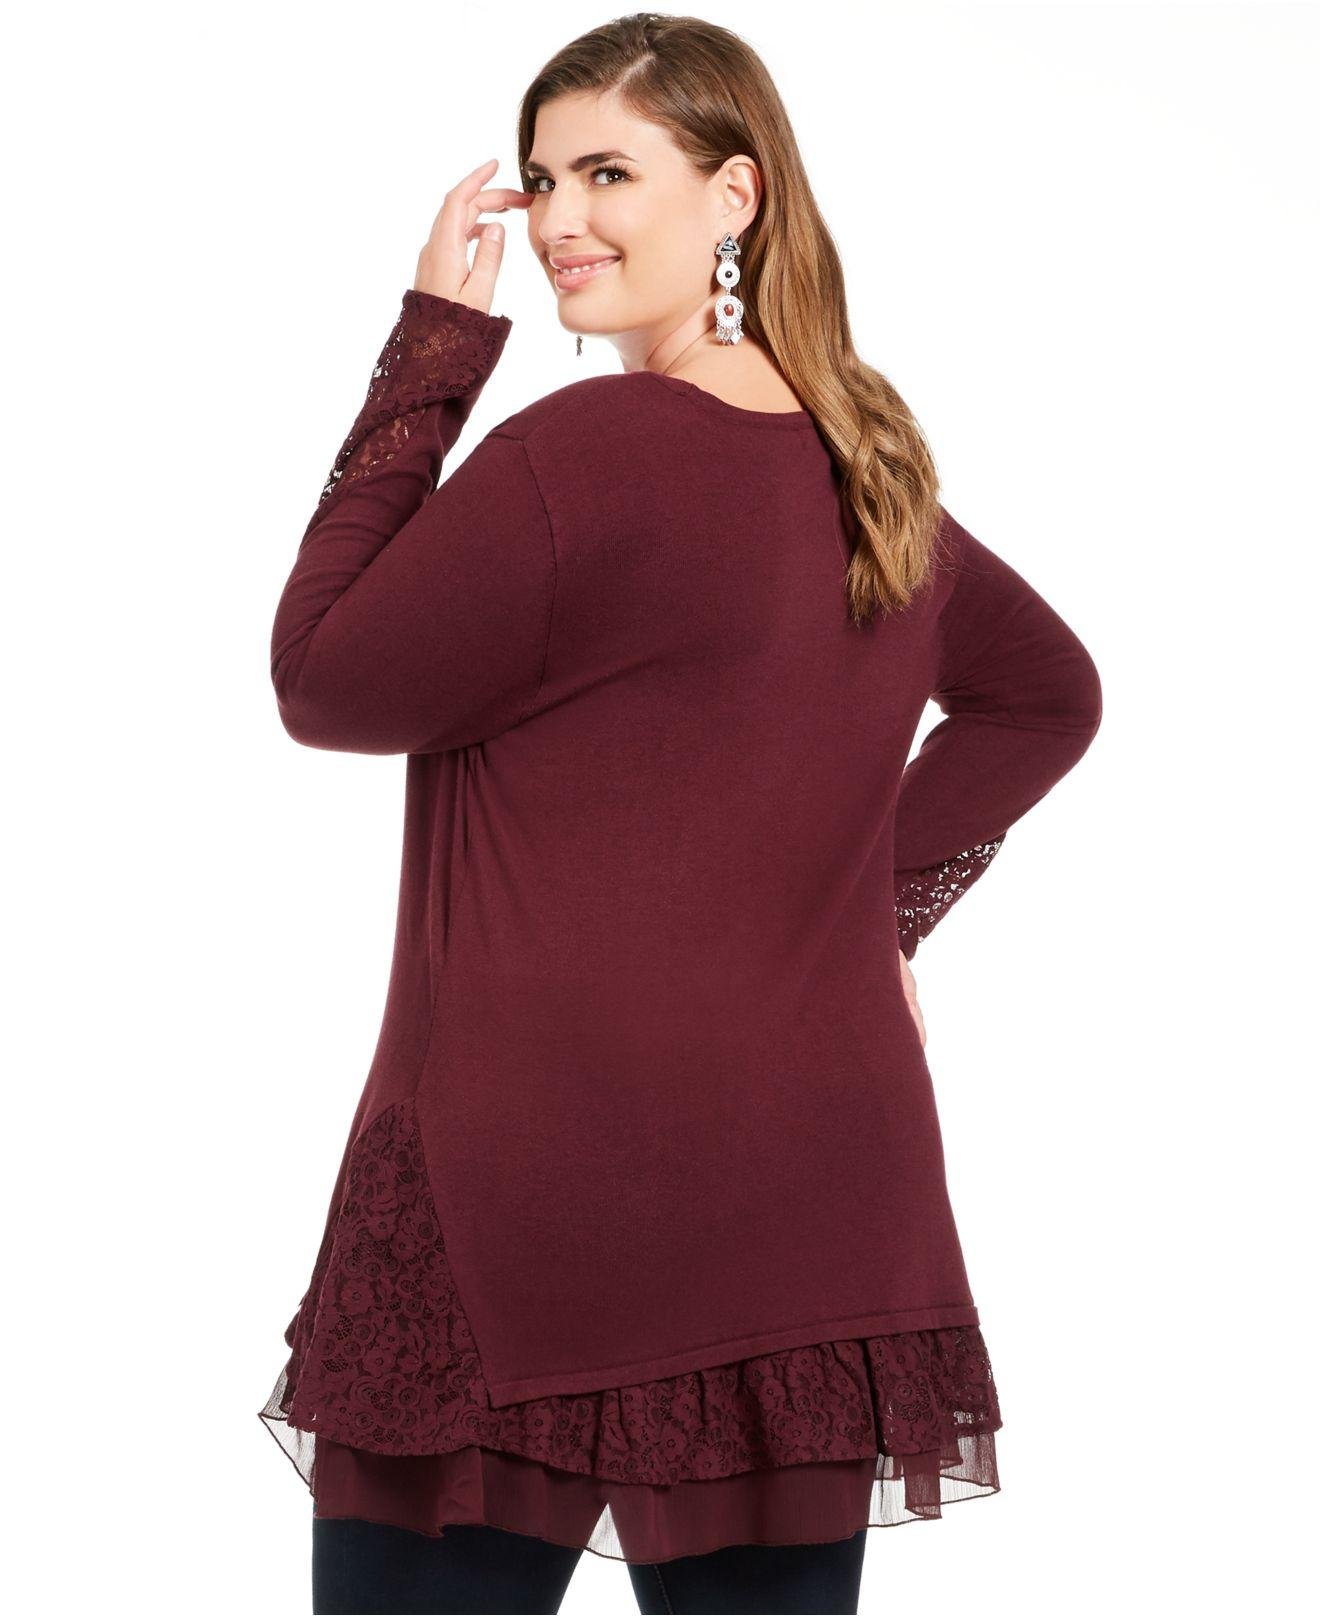 ANN HARVEY New Rust Red//Brown Lace Trim Blouse Top Tunic Size 20